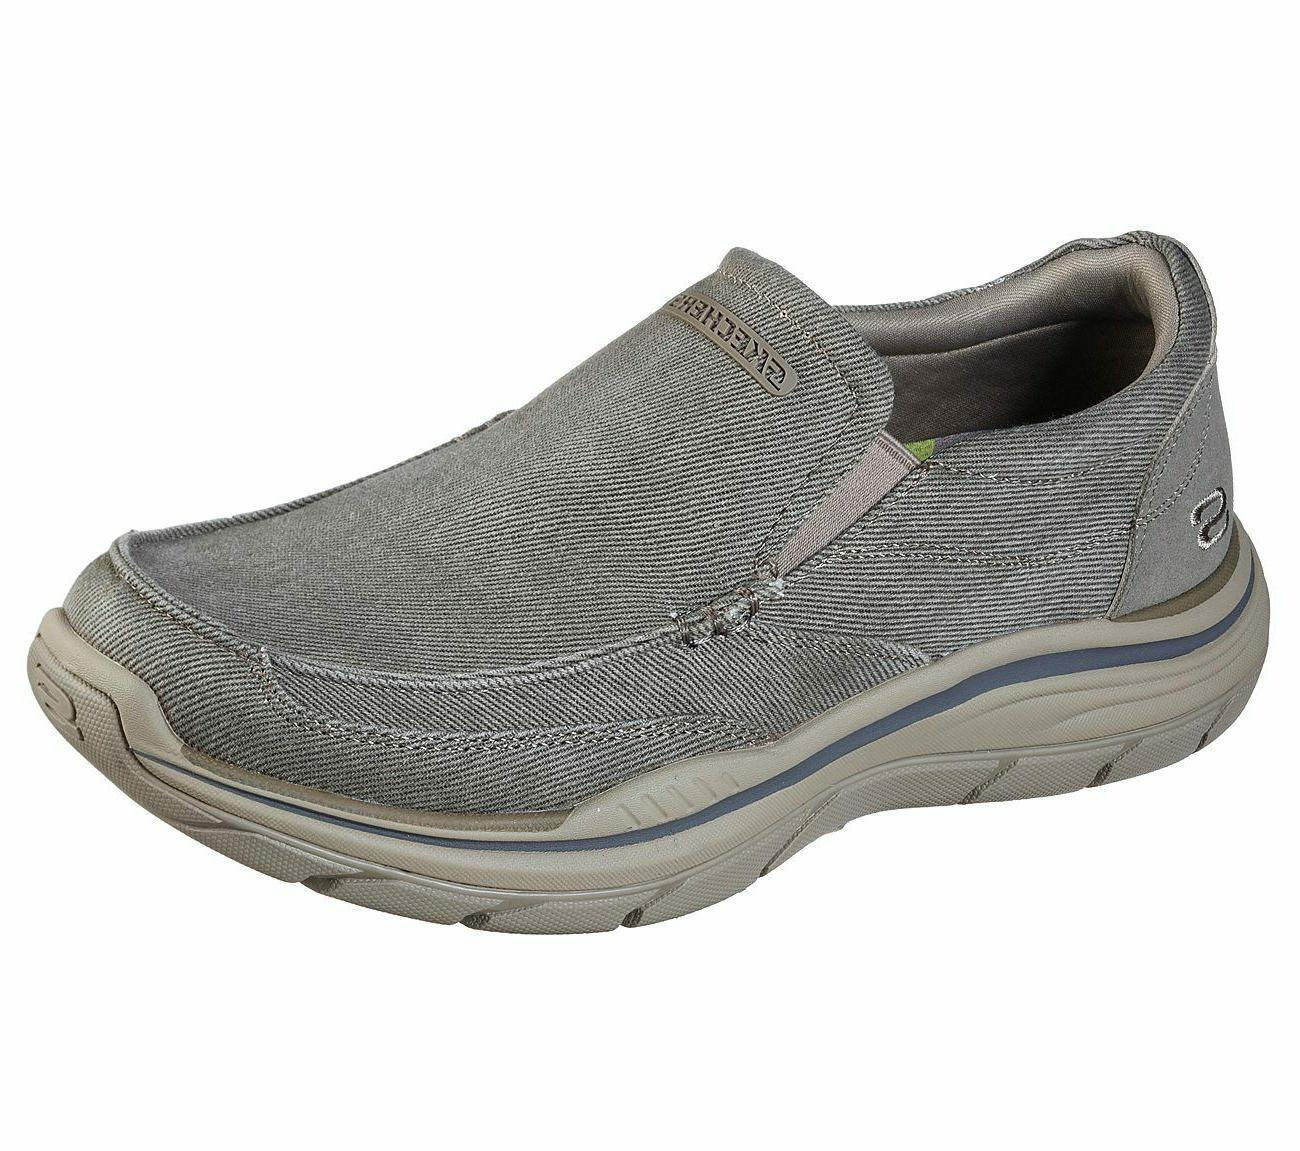 Khaki Slip on Canvas Skechers Relaxed Fit Shoes Men's Memory